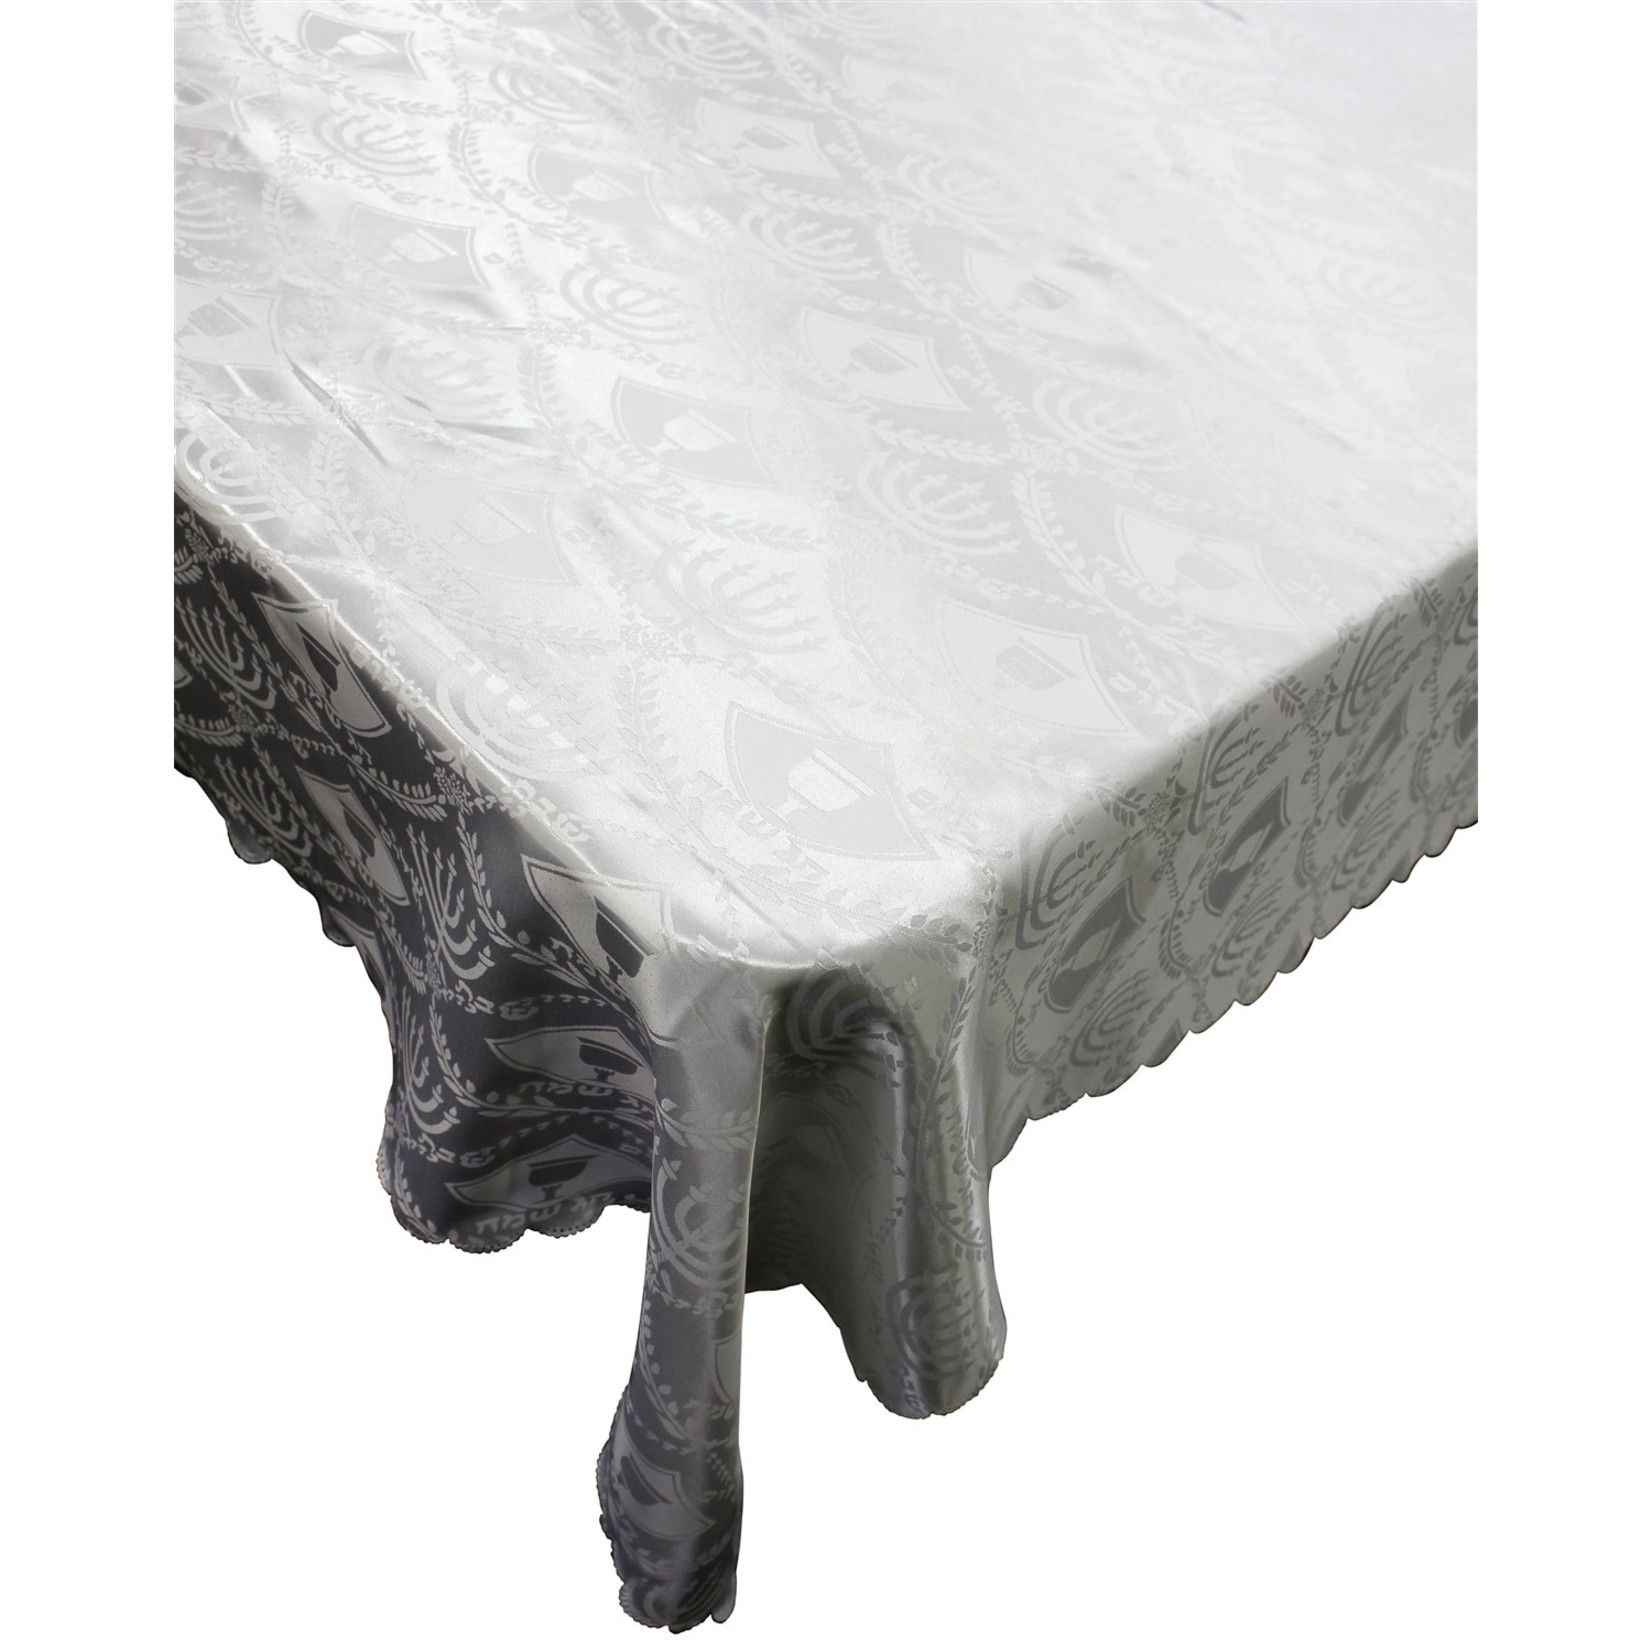 Stain-Resistant Tablecloth, 60x90 in (152x229 cm)